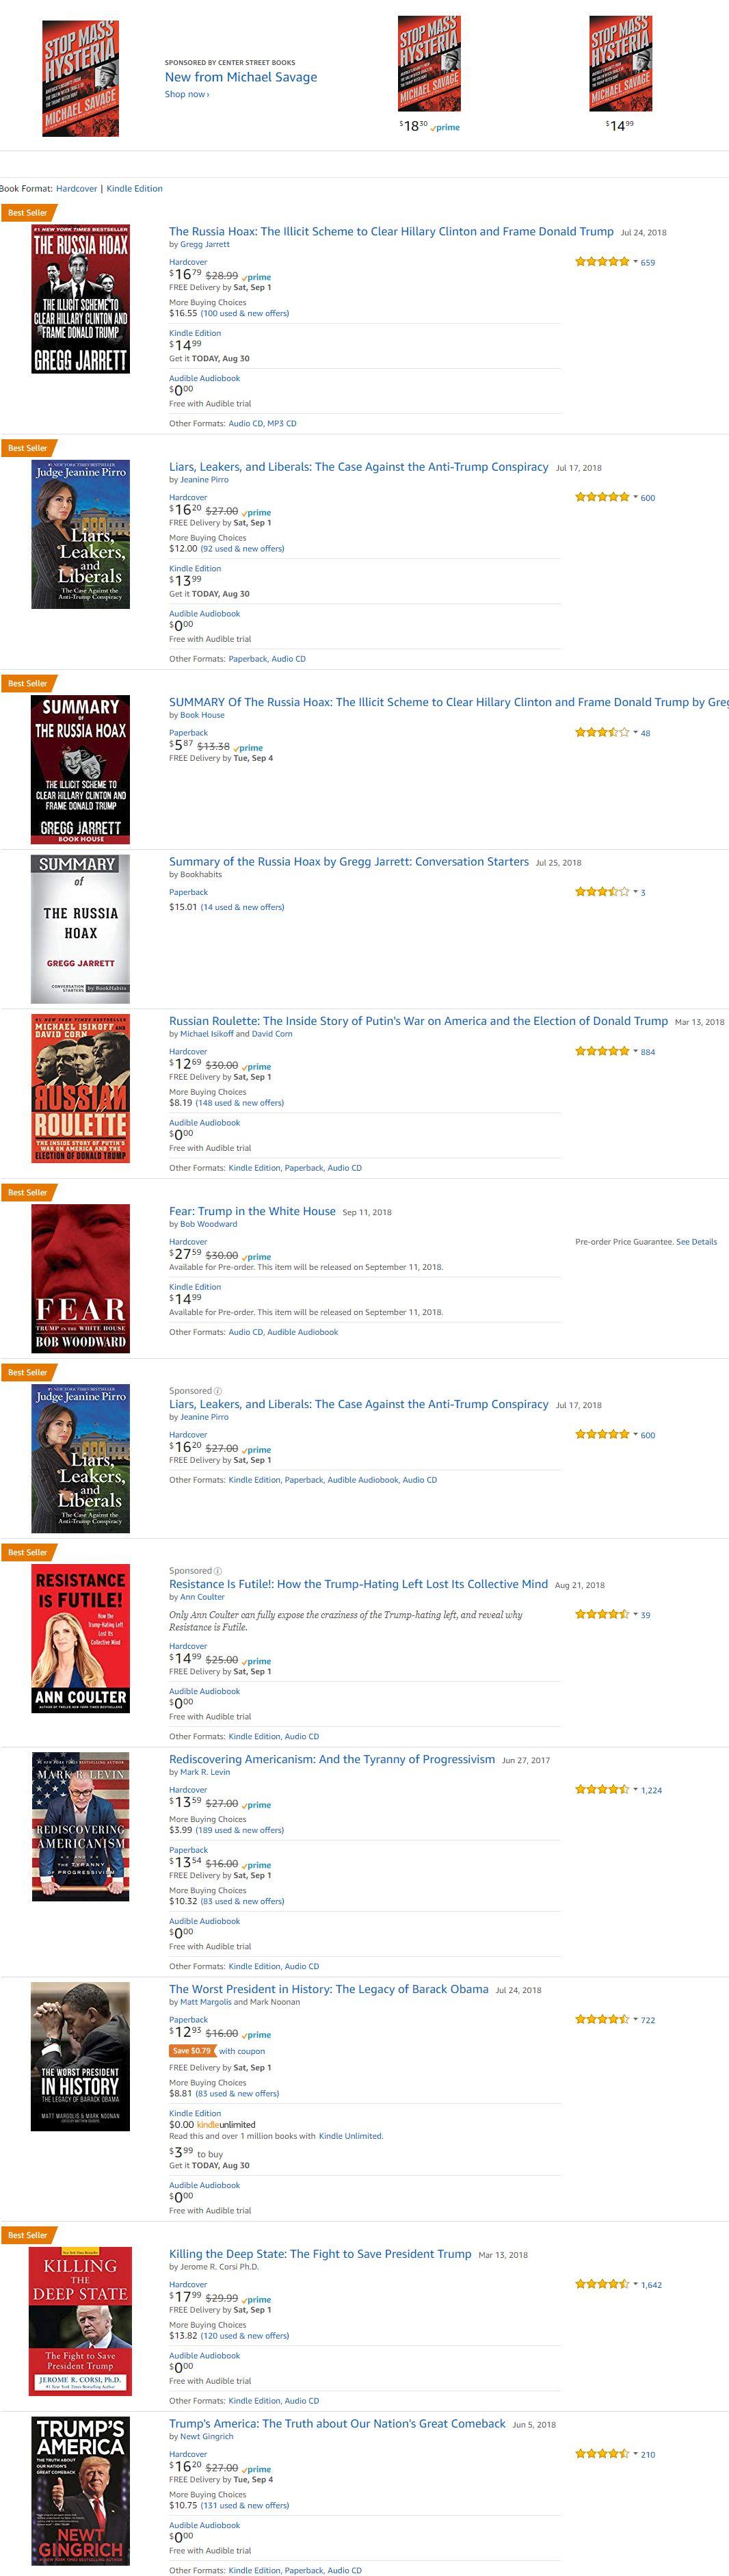 Russia Hoax by gregg jarrett and related top selling Books